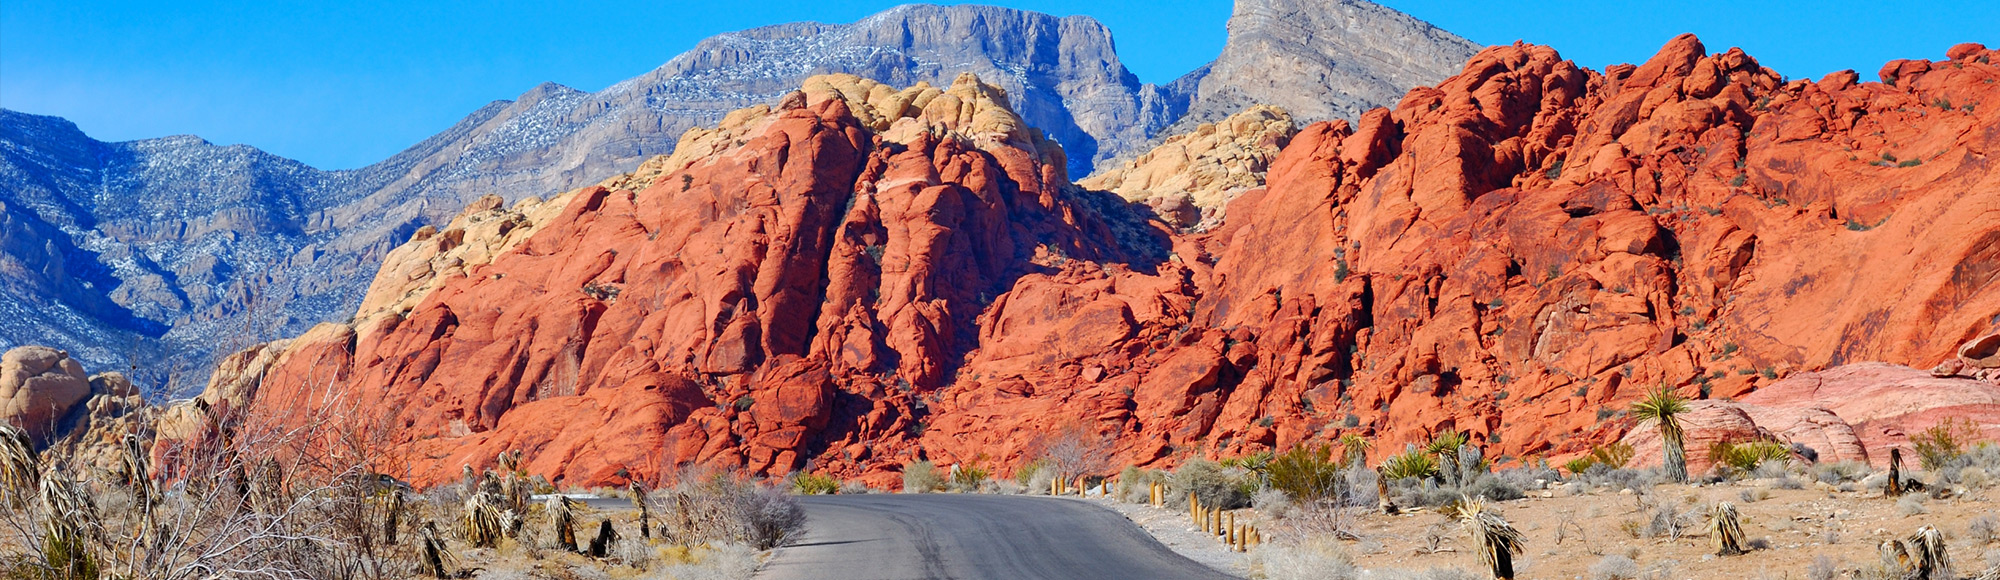 Red Rock - Las Vegas Nevada | Vegas com